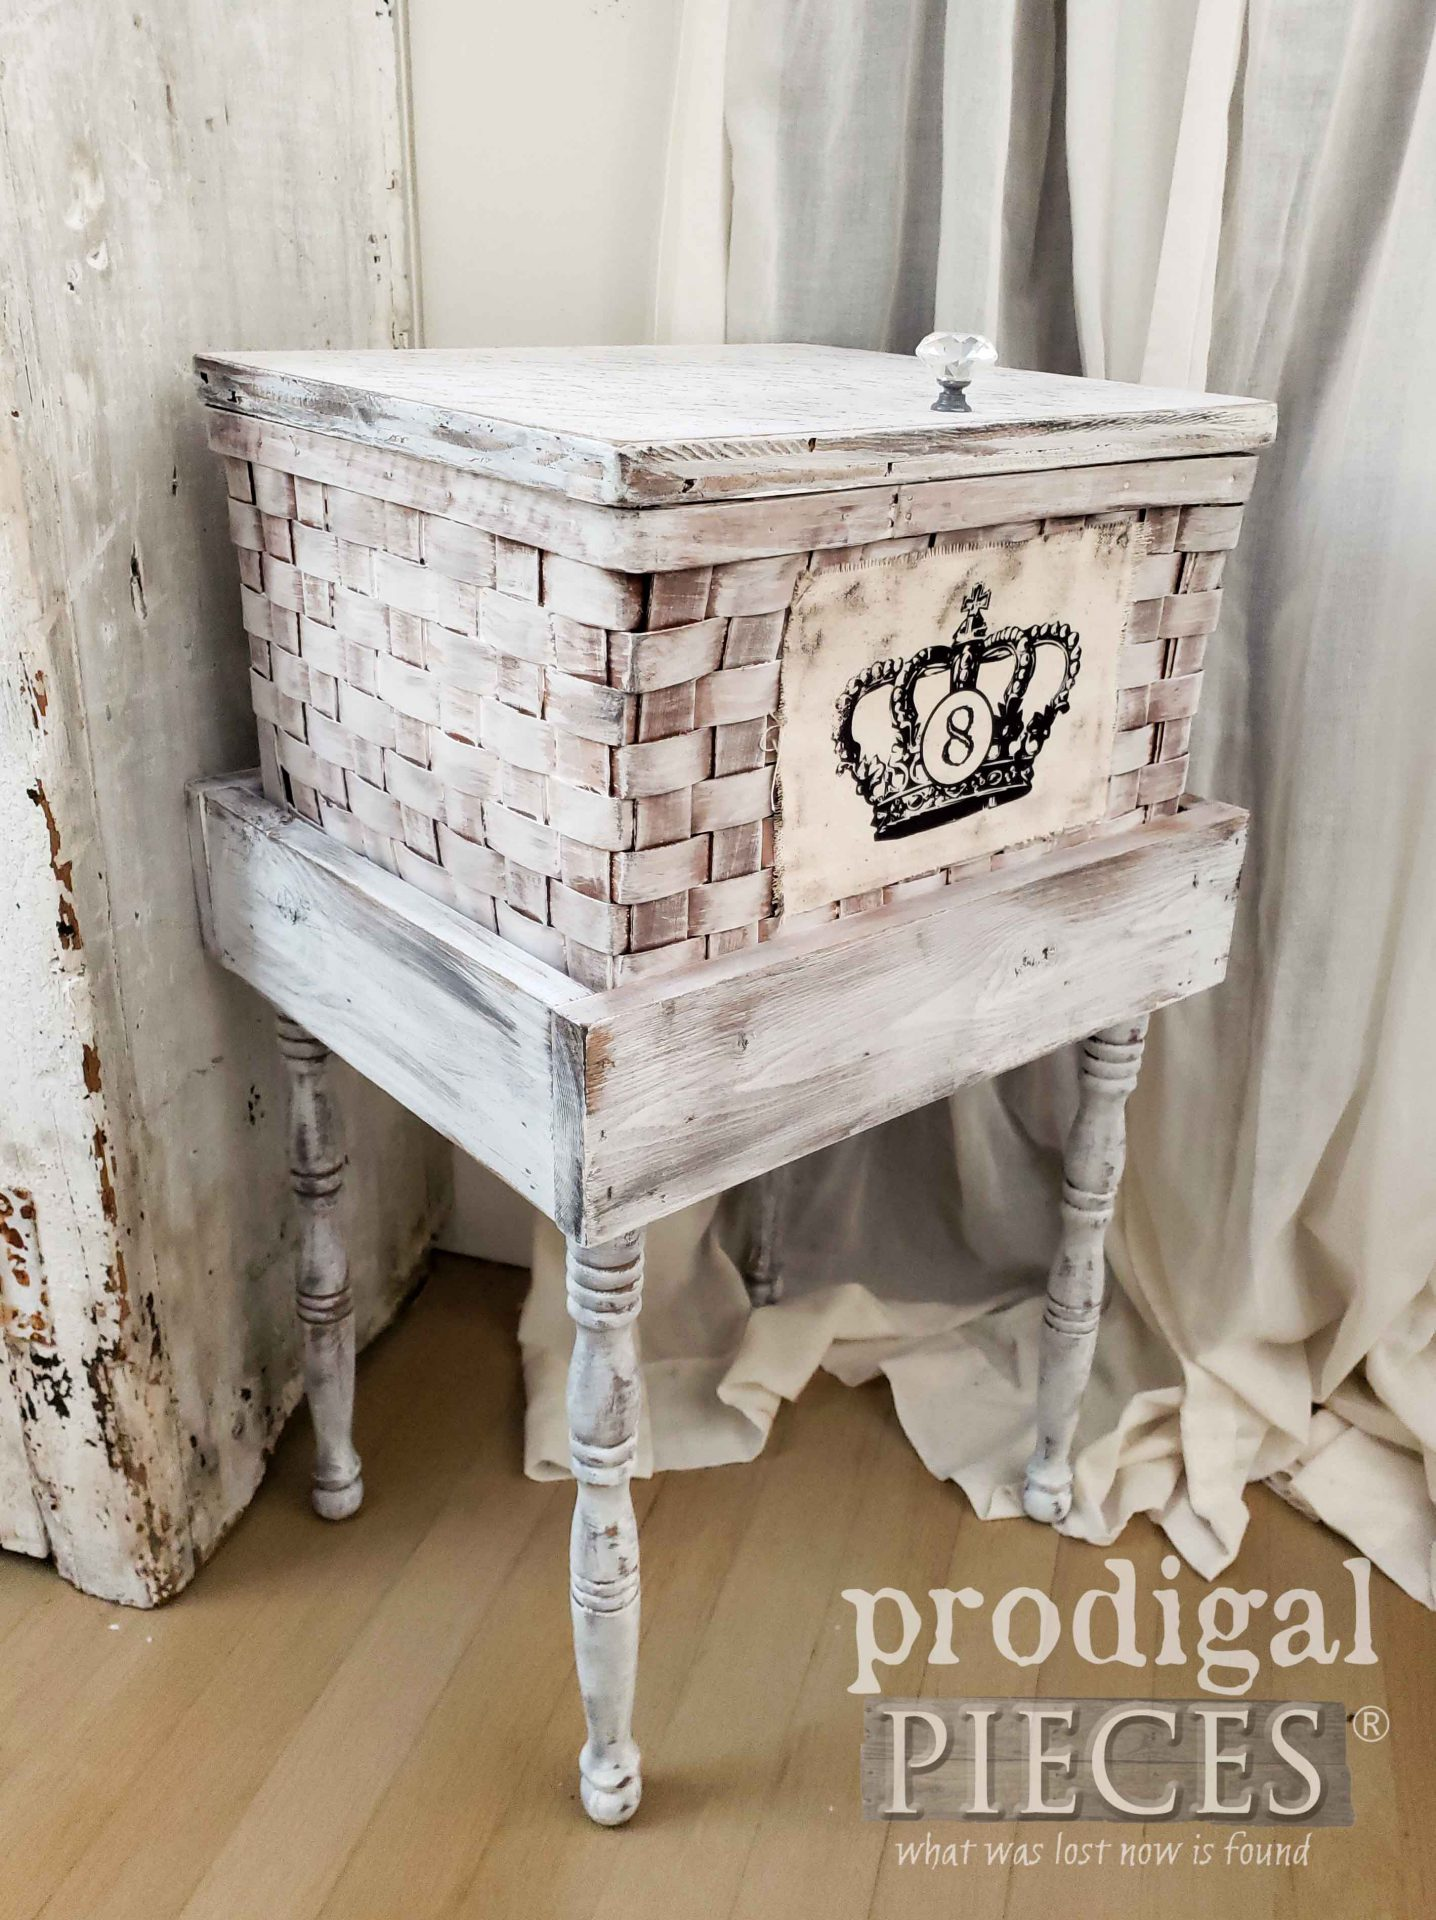 Handmade Basket with Storage and Mobility by Larissa of Prodigal Pieces | prodigalpieces.com #prodigalpieces #furniture #diy #home #homedecor